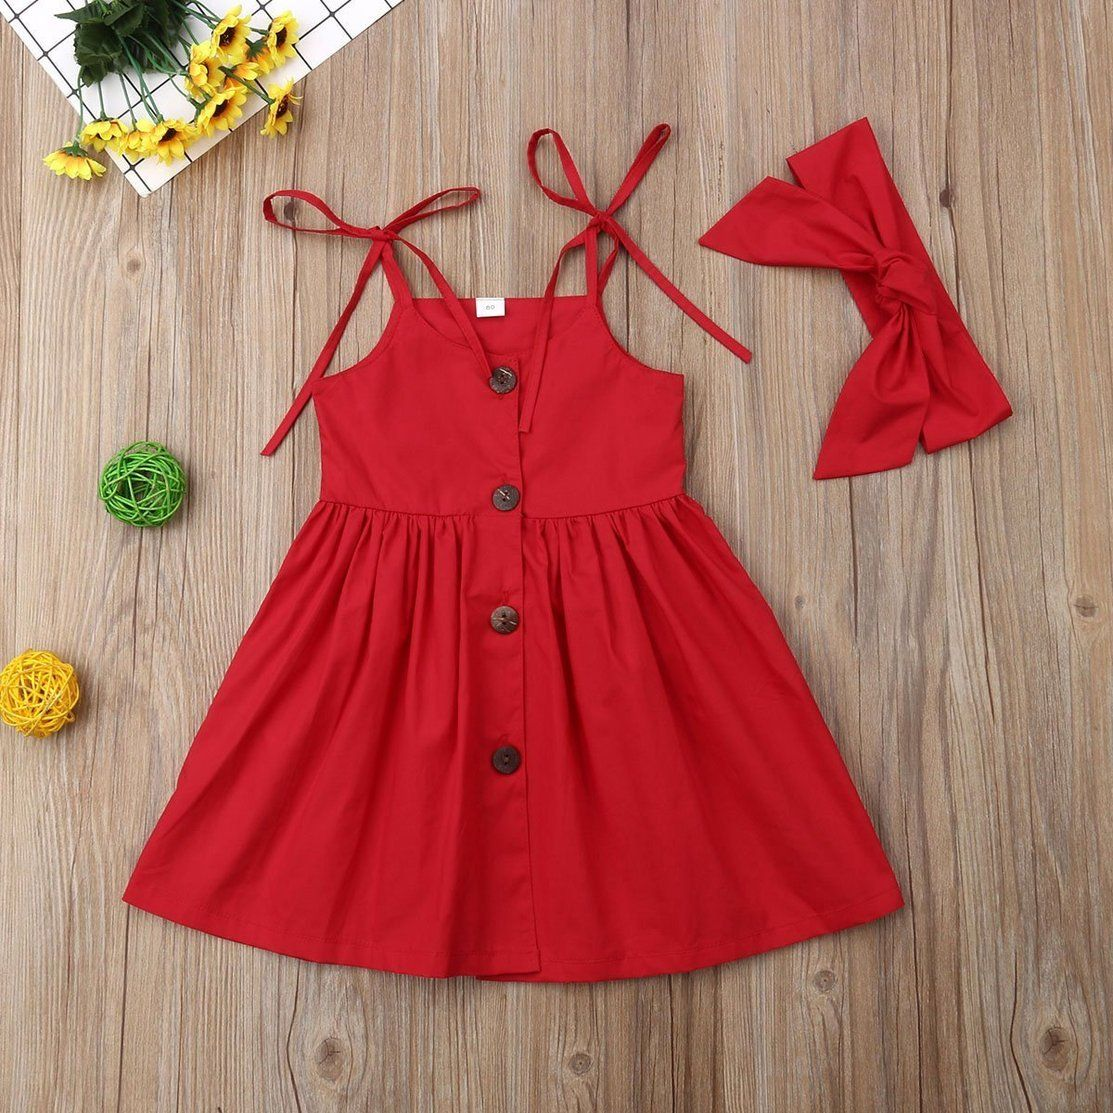 Cute As a Button Dress with Headband (2 Colors)